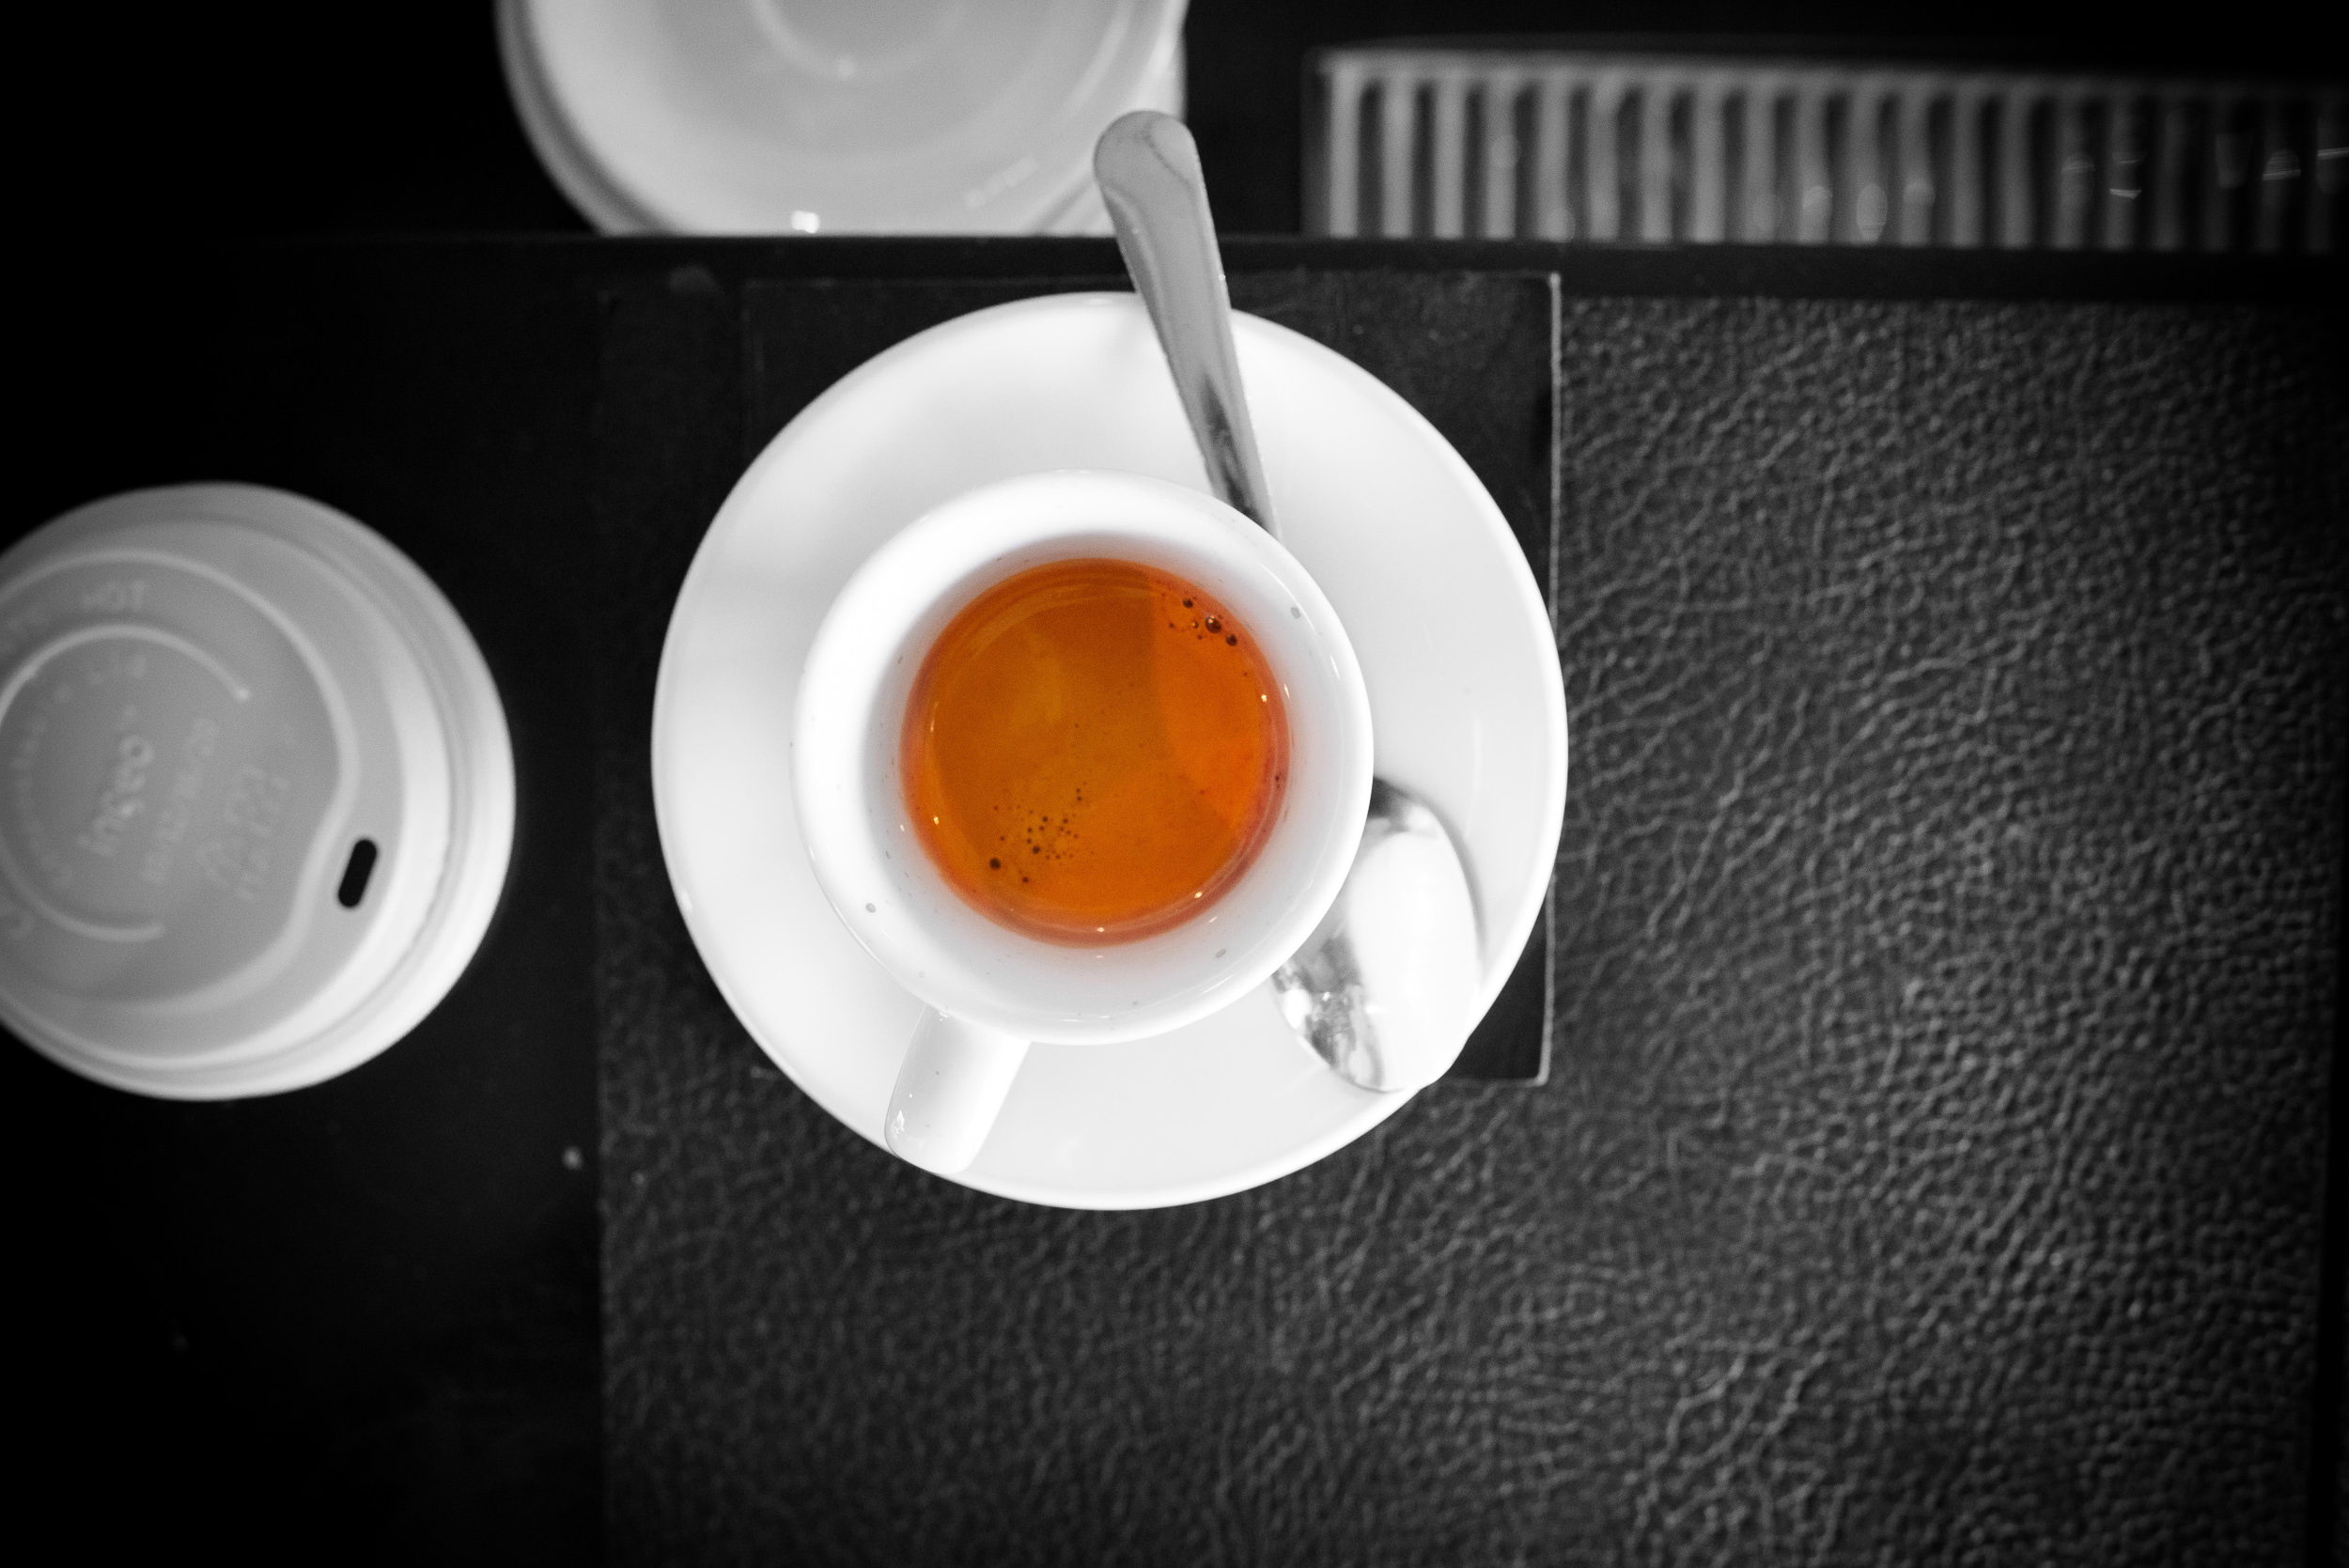 Espresso pulled by David Buehrer from Singapore's Nylon coffee e